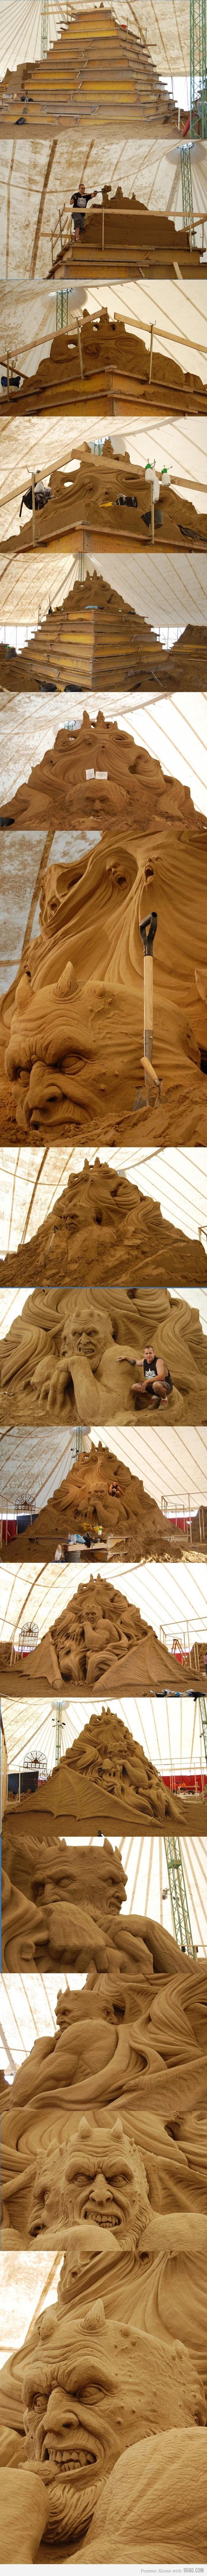 I don't like the scary faces but this is amazing! The detail is unbelievable!!